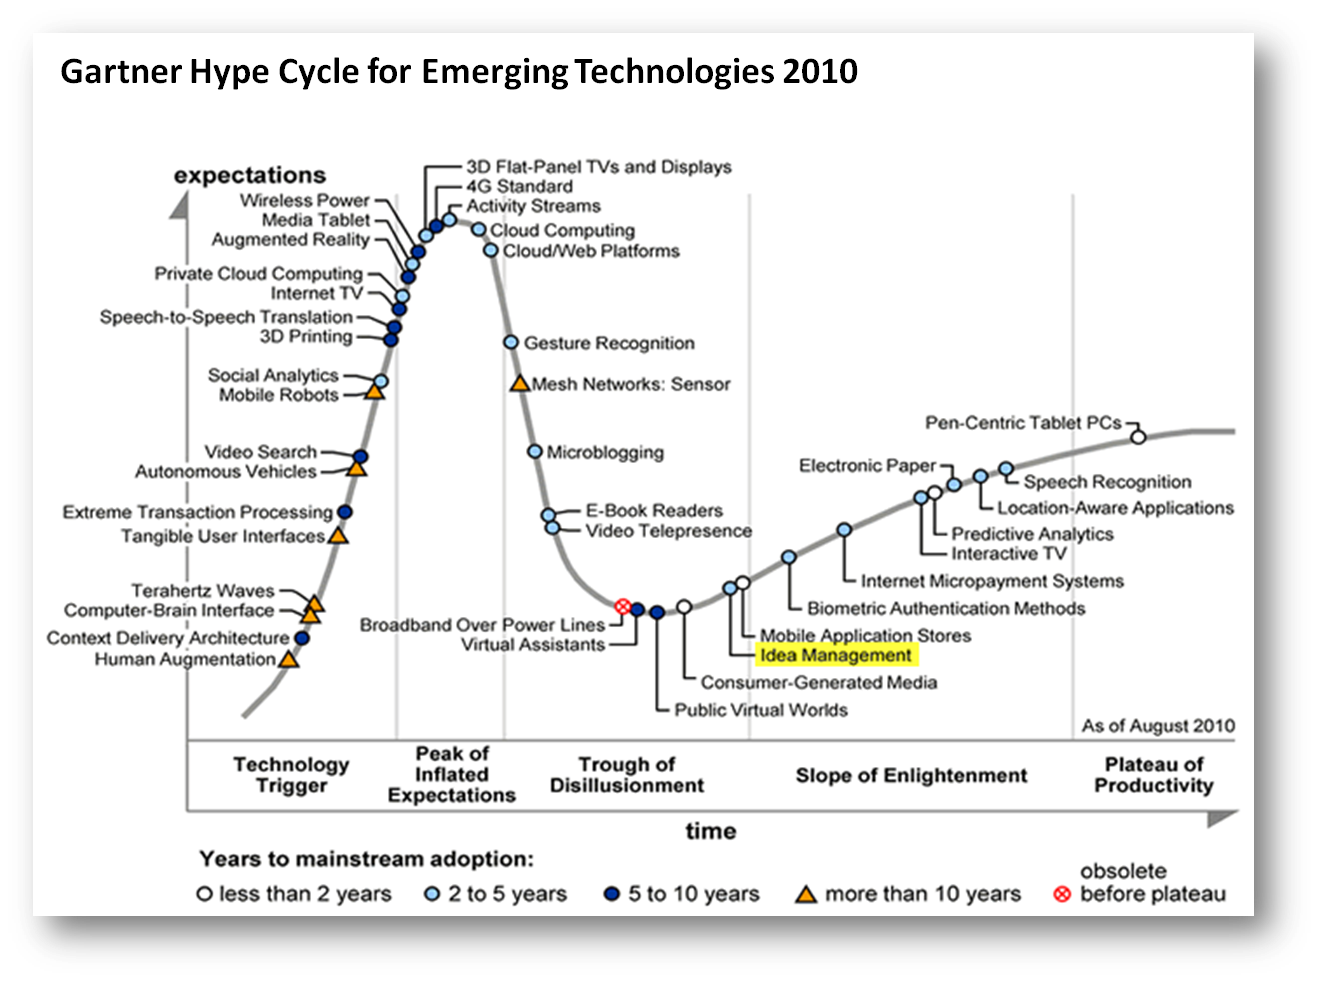 gartner hype cycle for emerging technologies 2010 - idea management